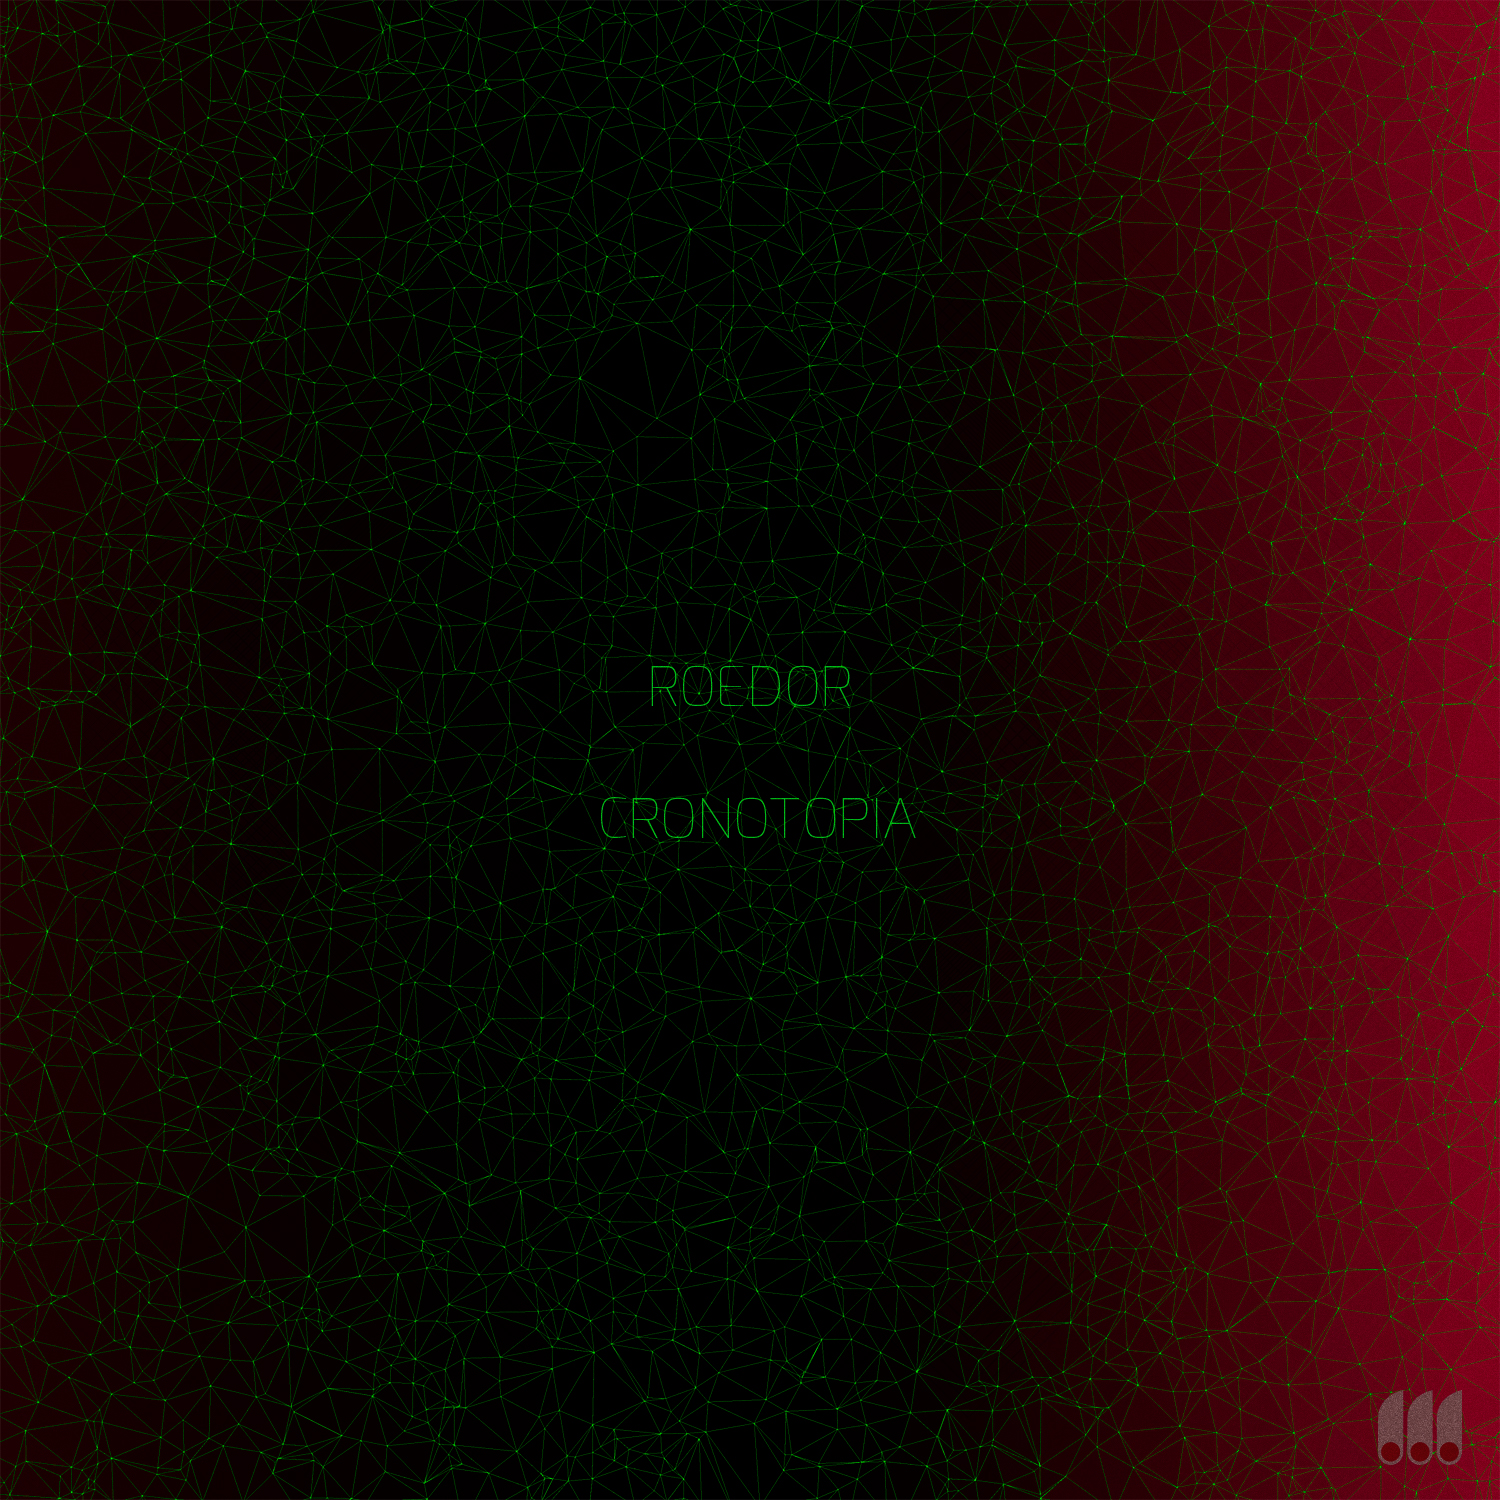 Mne012 Roedor Cronotopia Roedor Free Download Borrow And Streaming Internet Archive